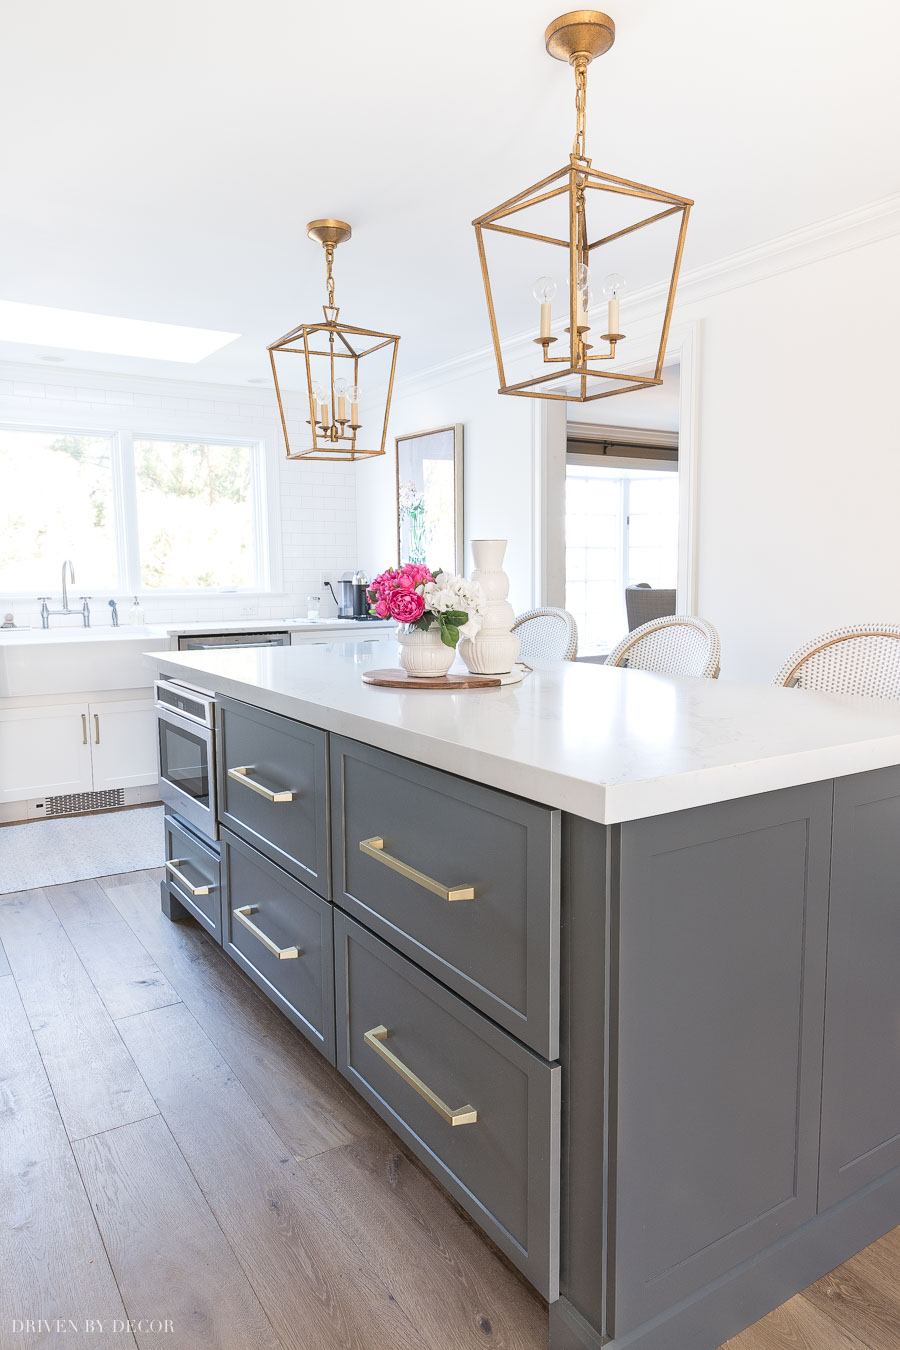 Loving the hidden kitchen command center in the drawer within the drawer of this kitchen island!